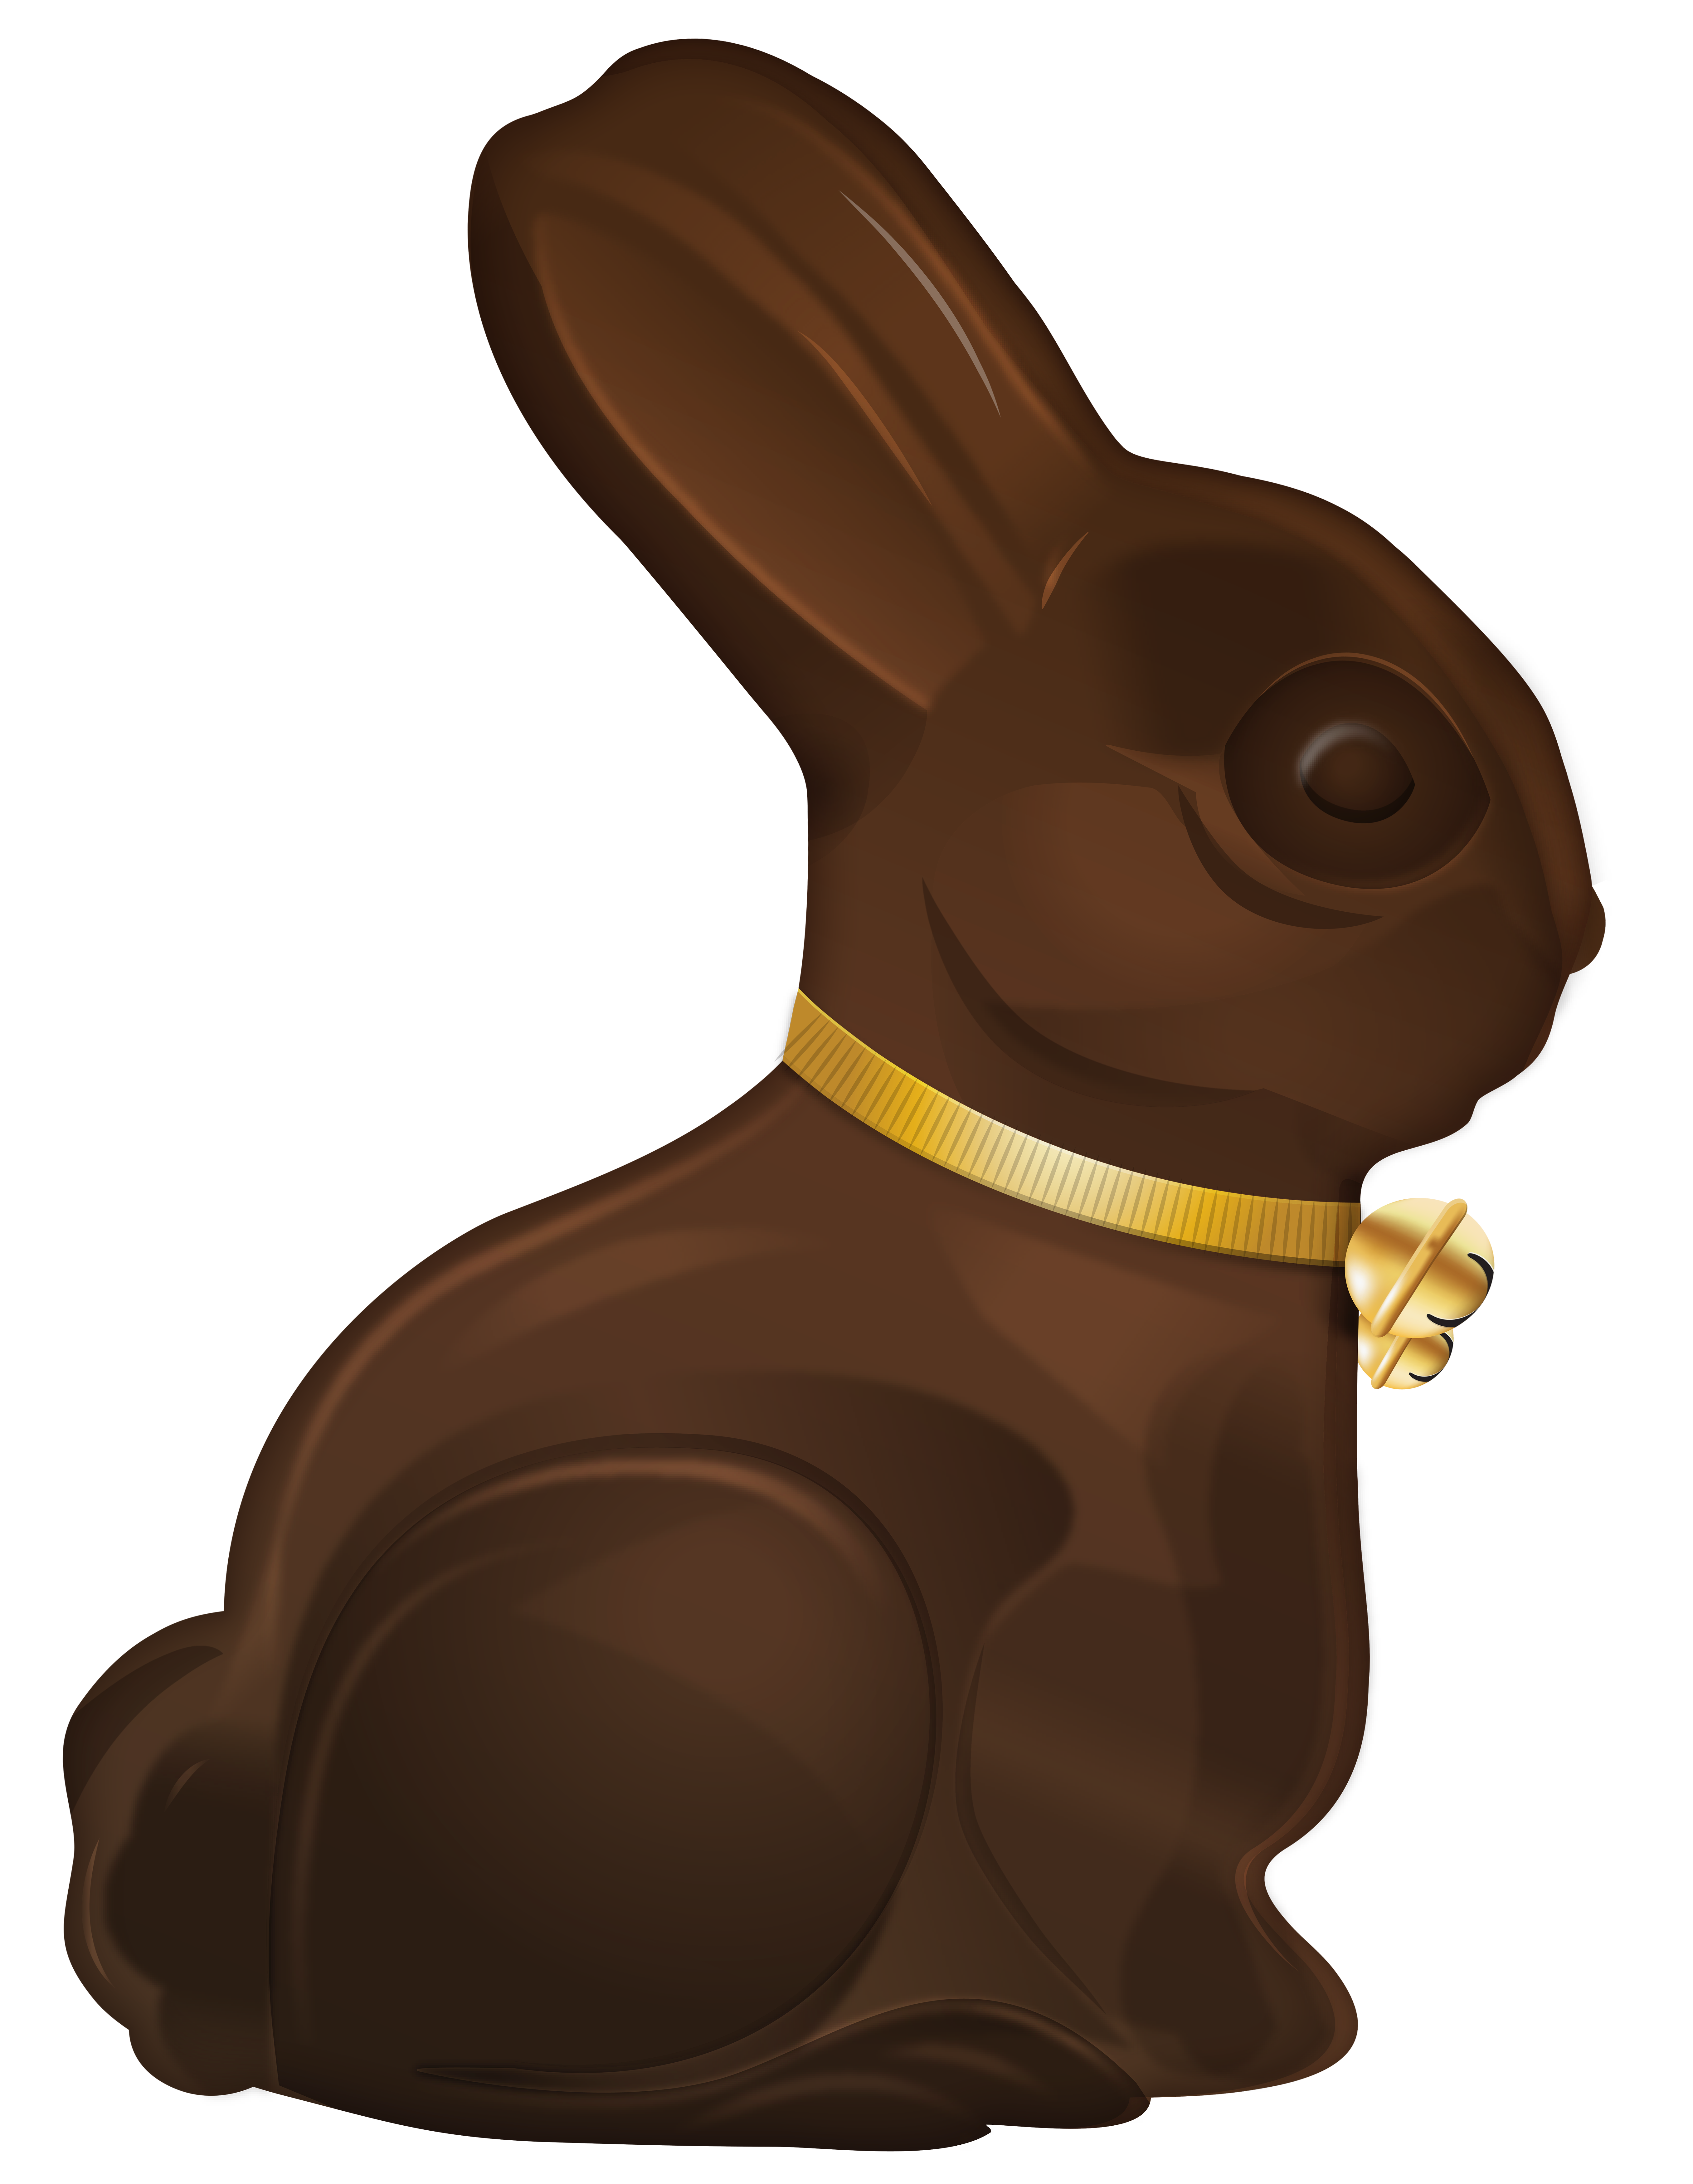 Easter Choco Bunny PNG Clip Art Image.